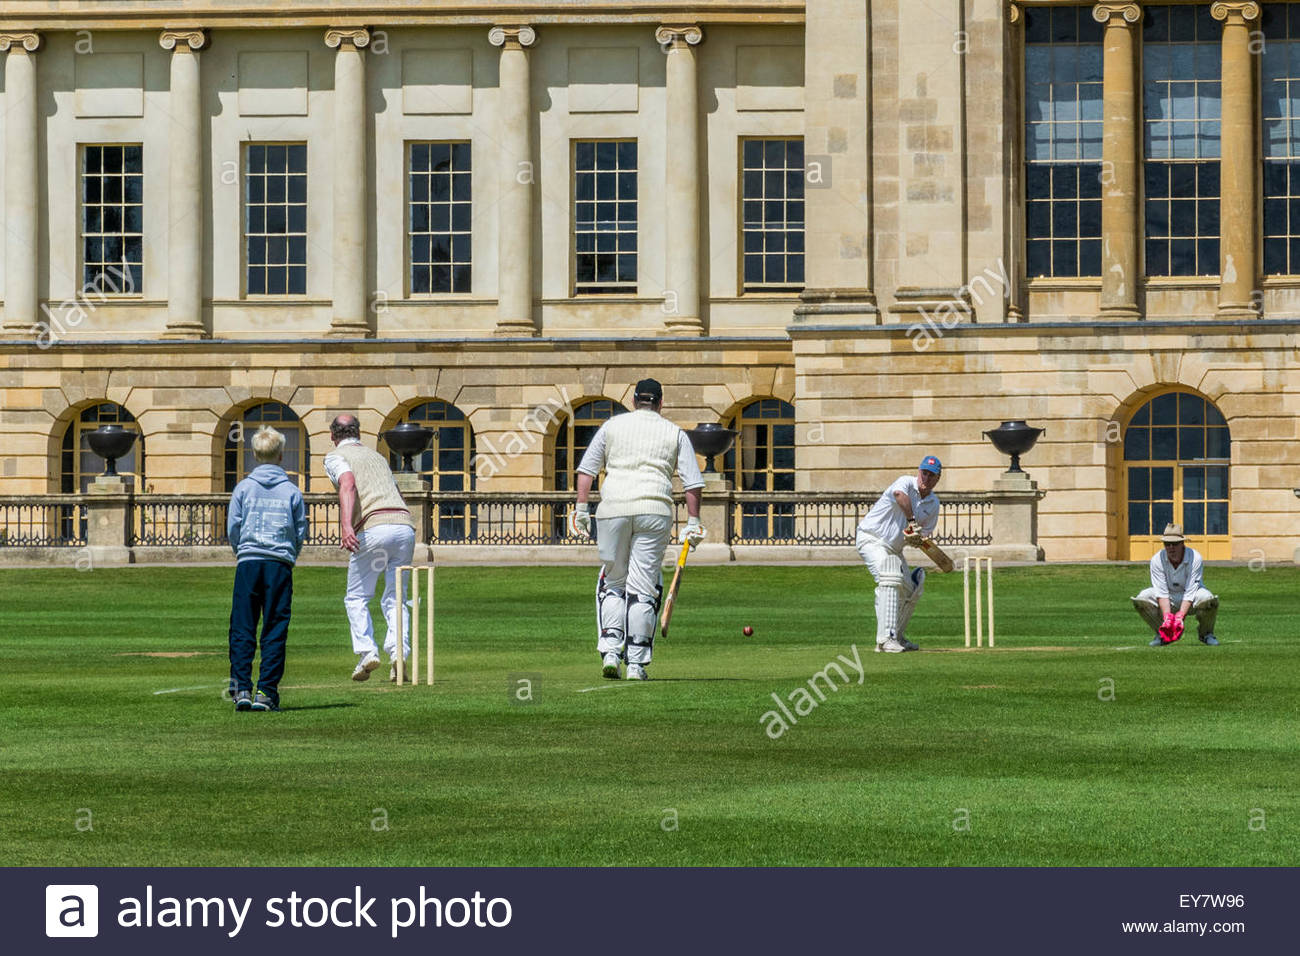 Batsman faces the bowler in a cricket match with the stately home of Stowe House in the background - Stock Image